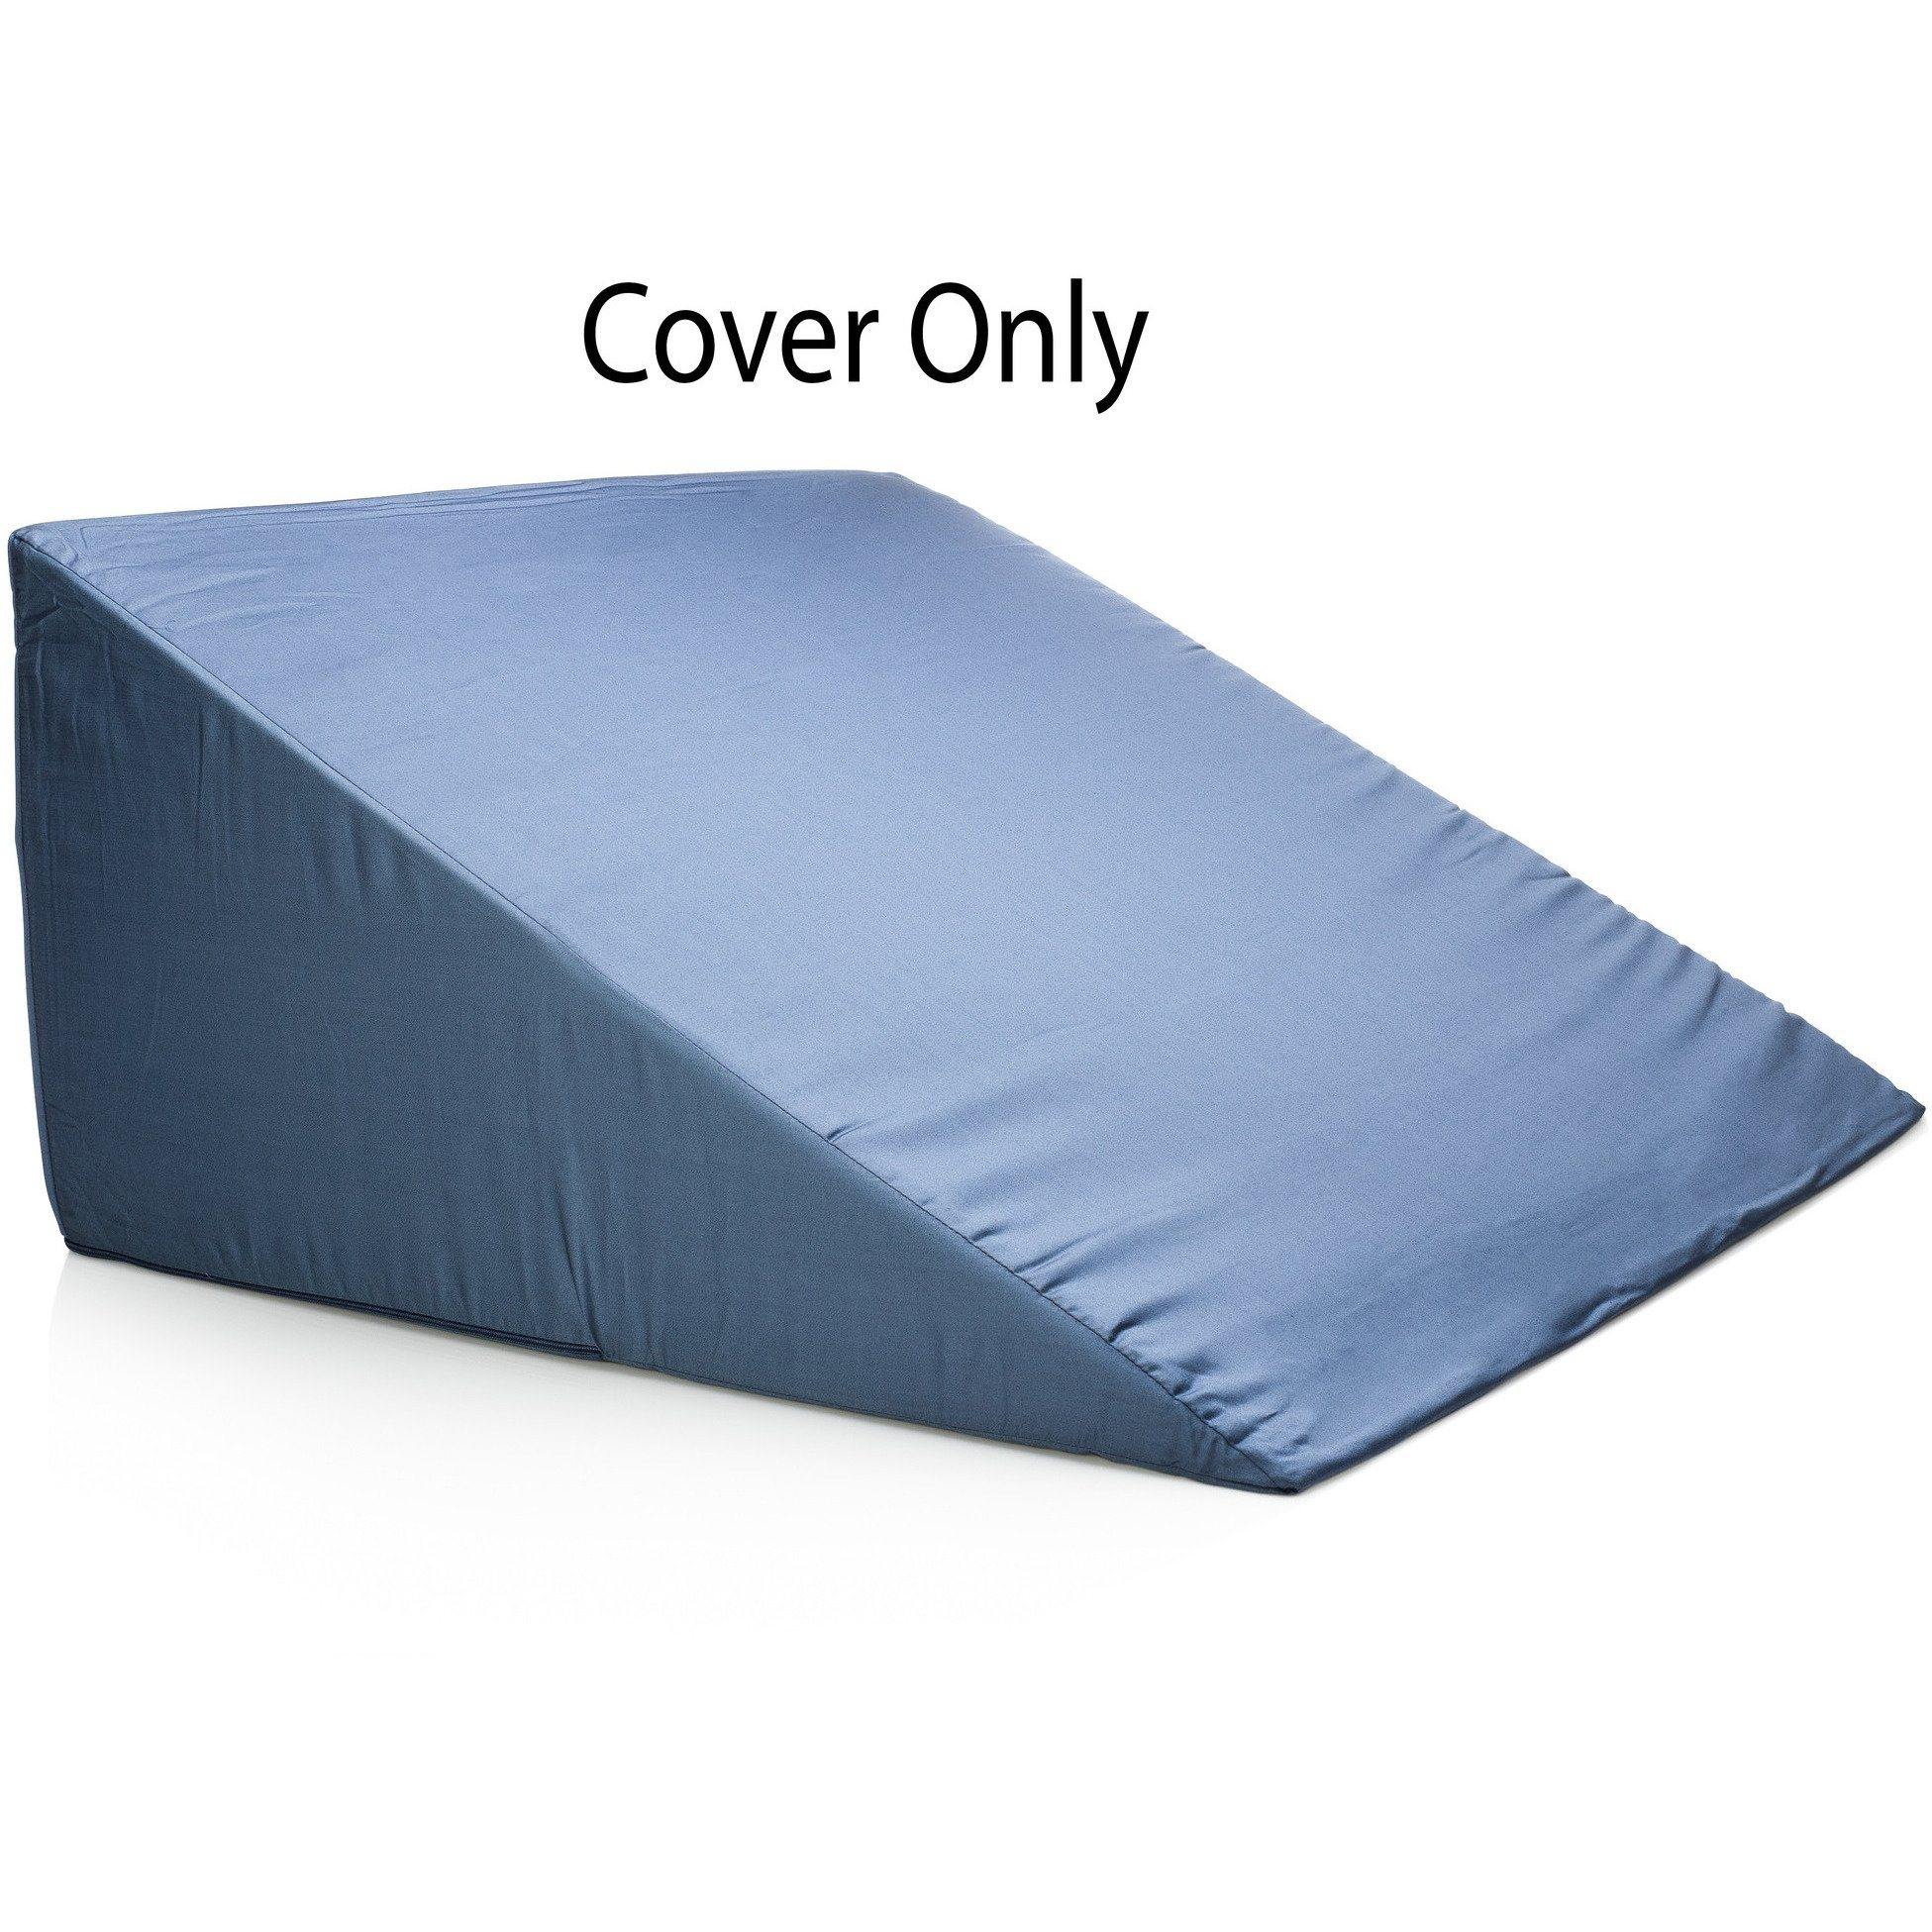 bed wedge pillow case cover